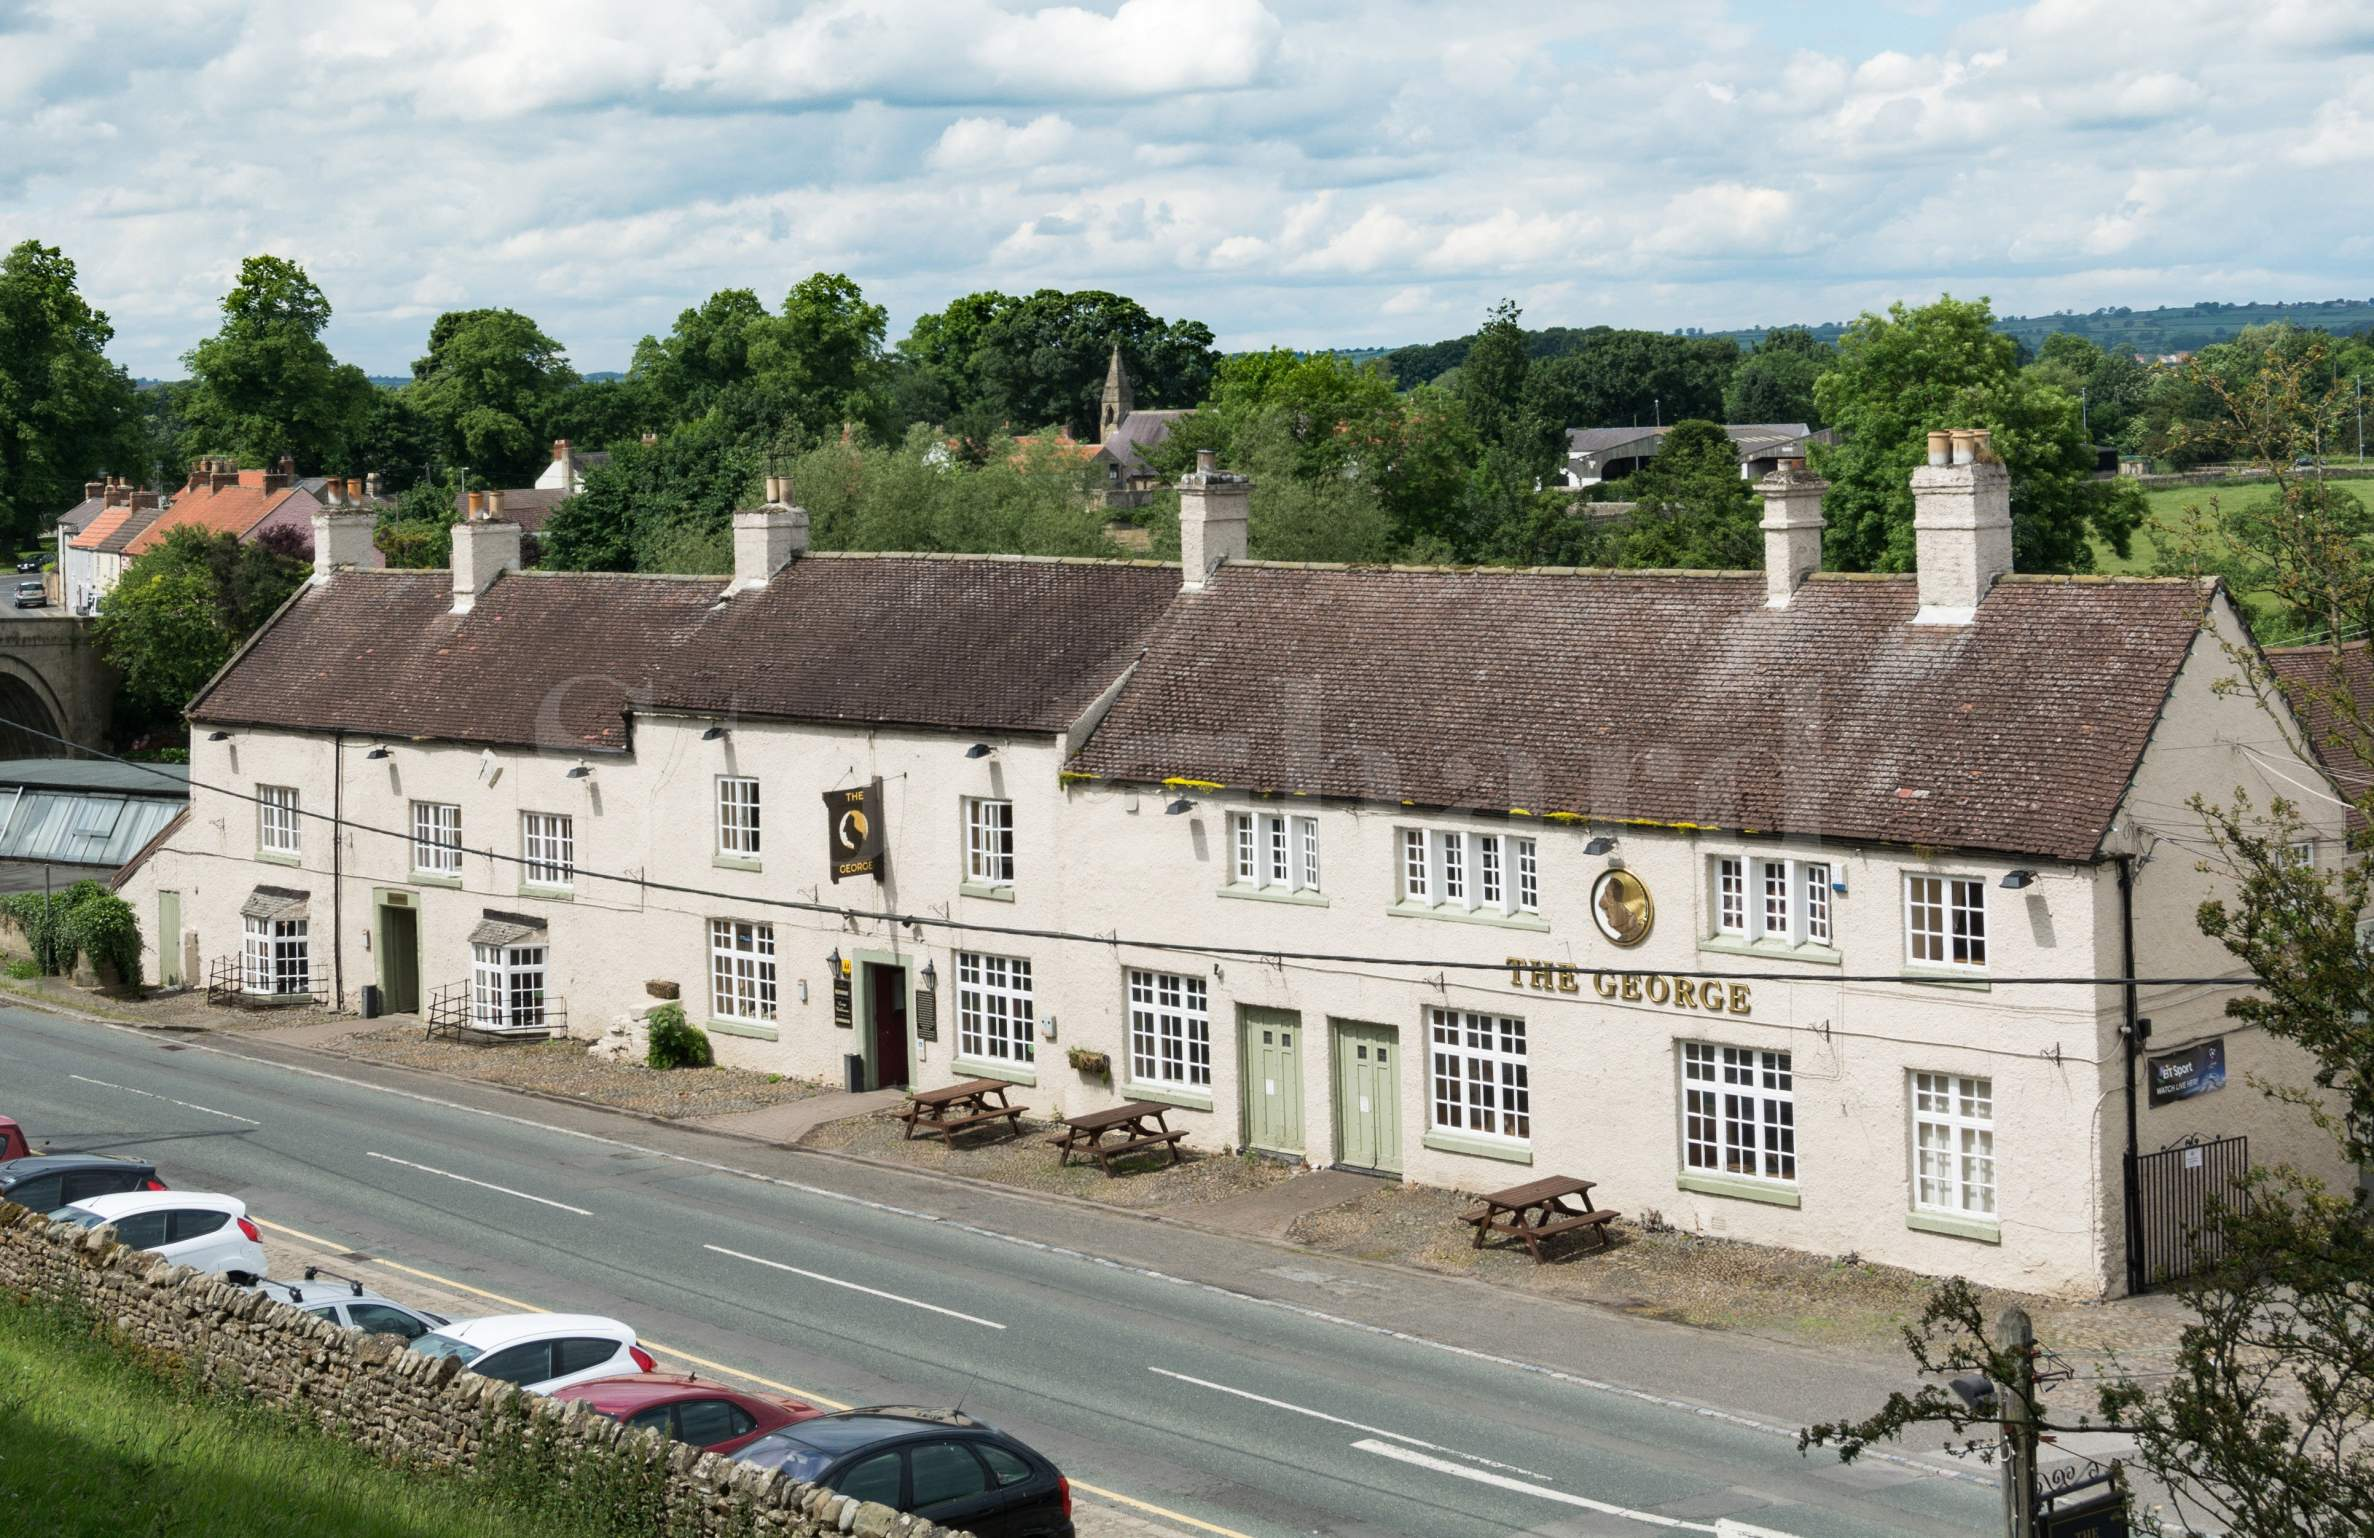 Boutique hotel room investment with 55% return over 5 years1 - Stonehard